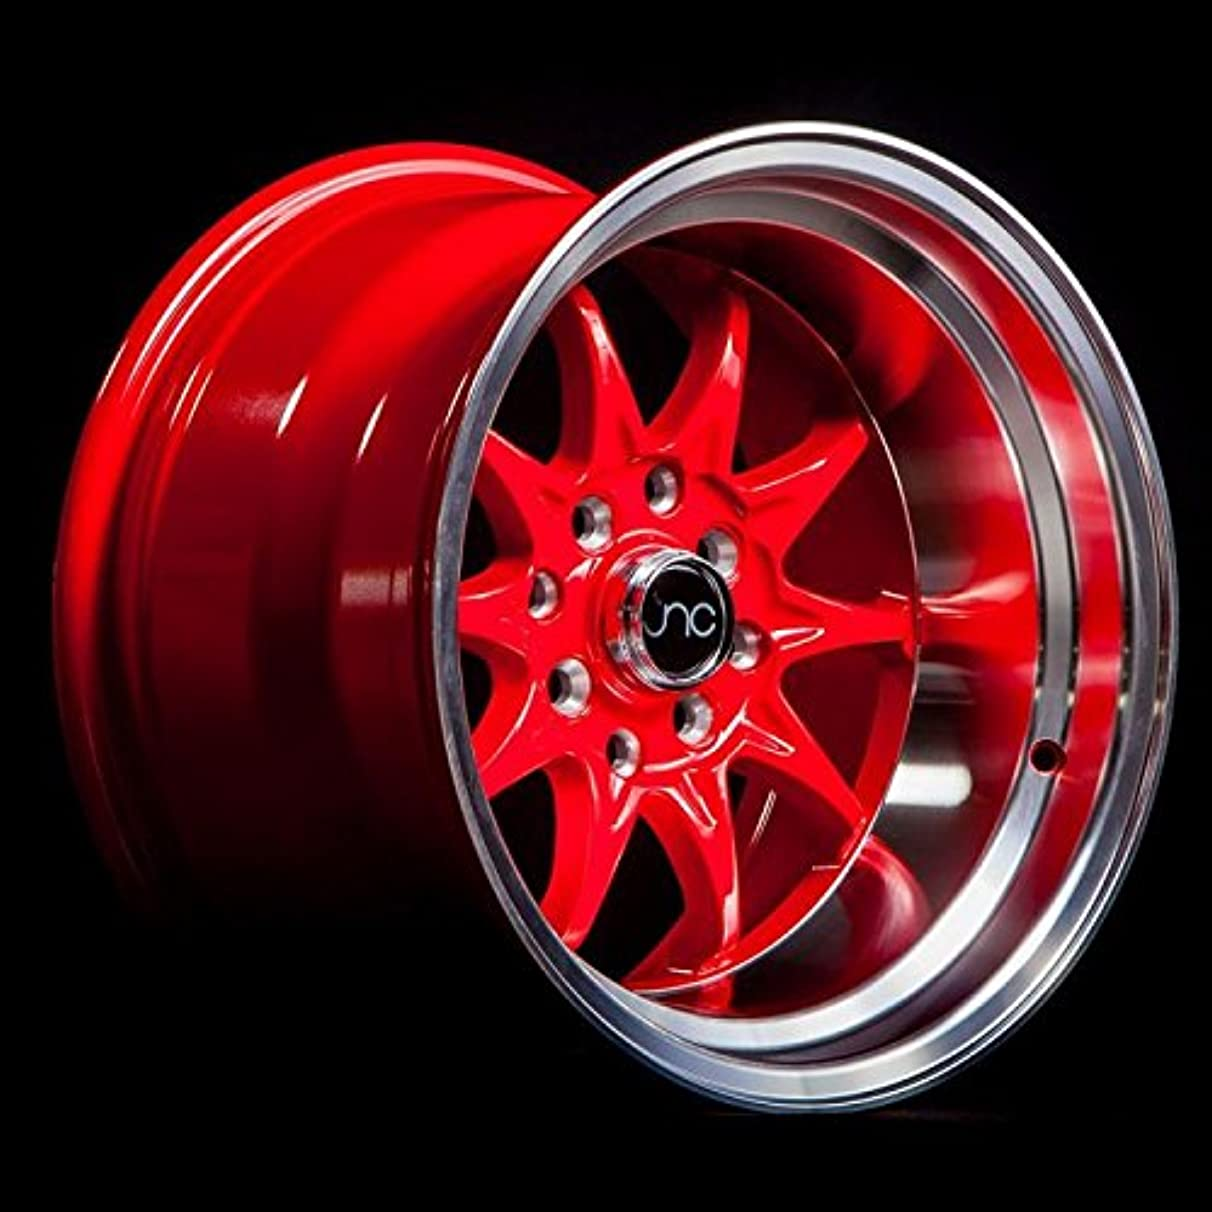 JNC003 Red Machined Lip 15x8 4x100 4x114.3 ET0 Offset Wheel Rim